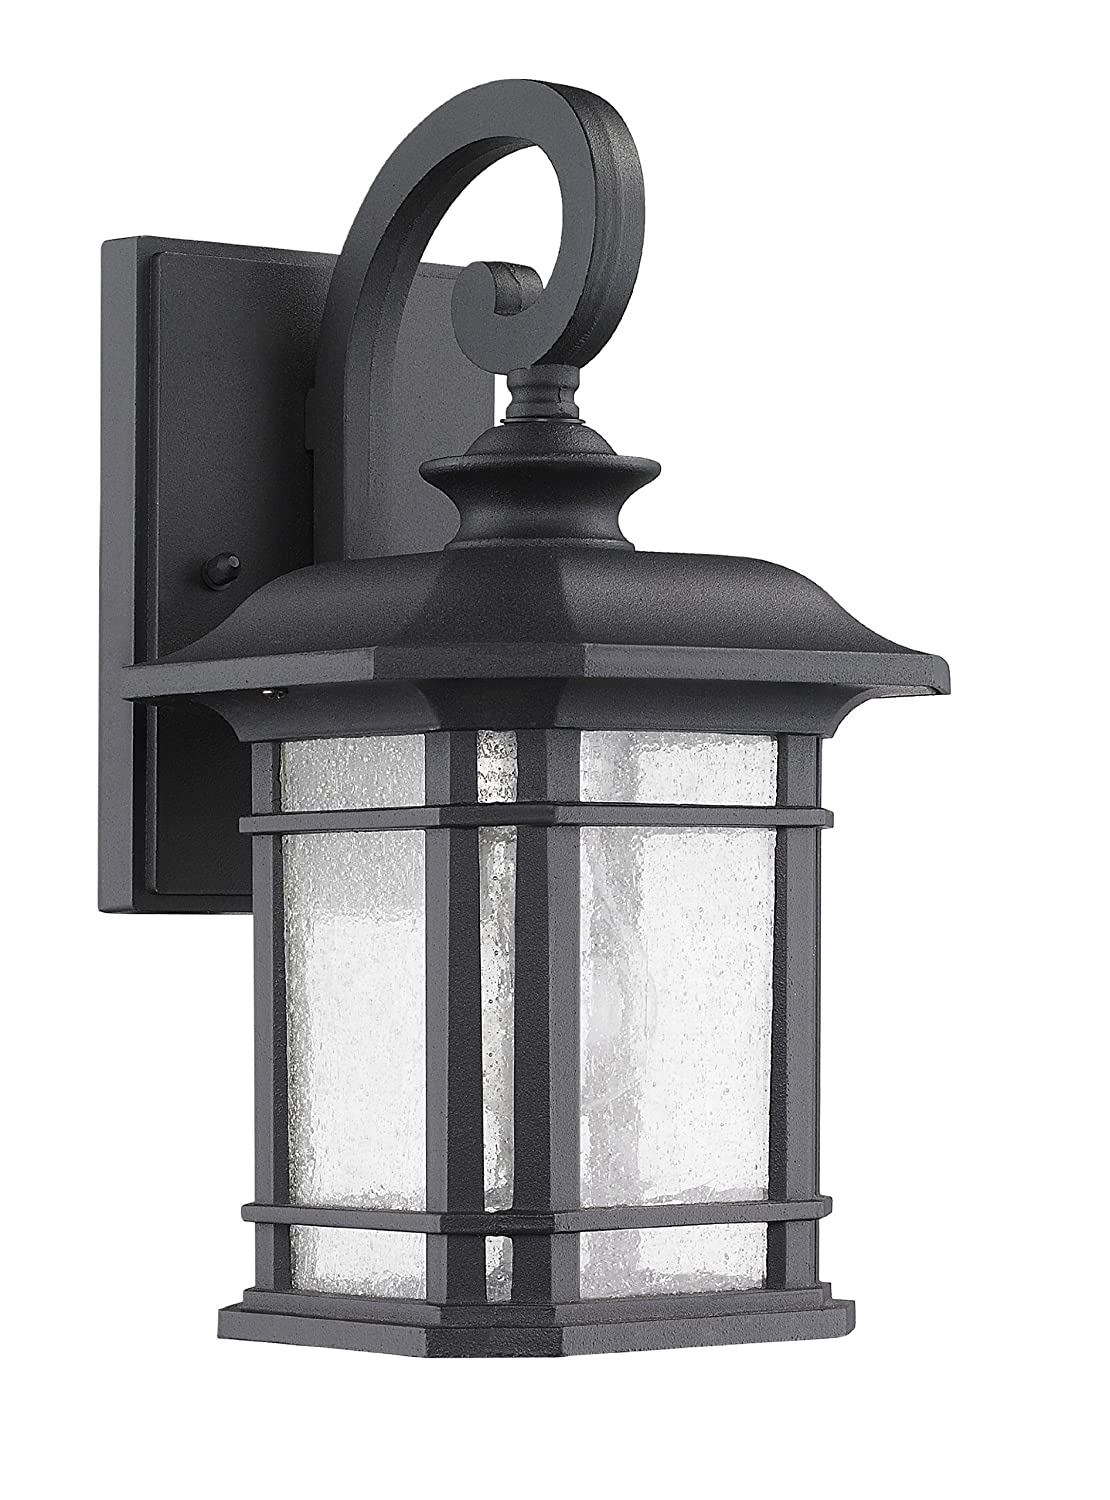 Chloe Lighting CH22021BK17-OD1 Franklin  Transitional 1-Light Black Outdoor Wall Sconce 17  Height - Home Outdoor Electric Lighting - Amazon.com  sc 1 st  Amazon.com & Chloe Lighting CH22021BK17-OD1